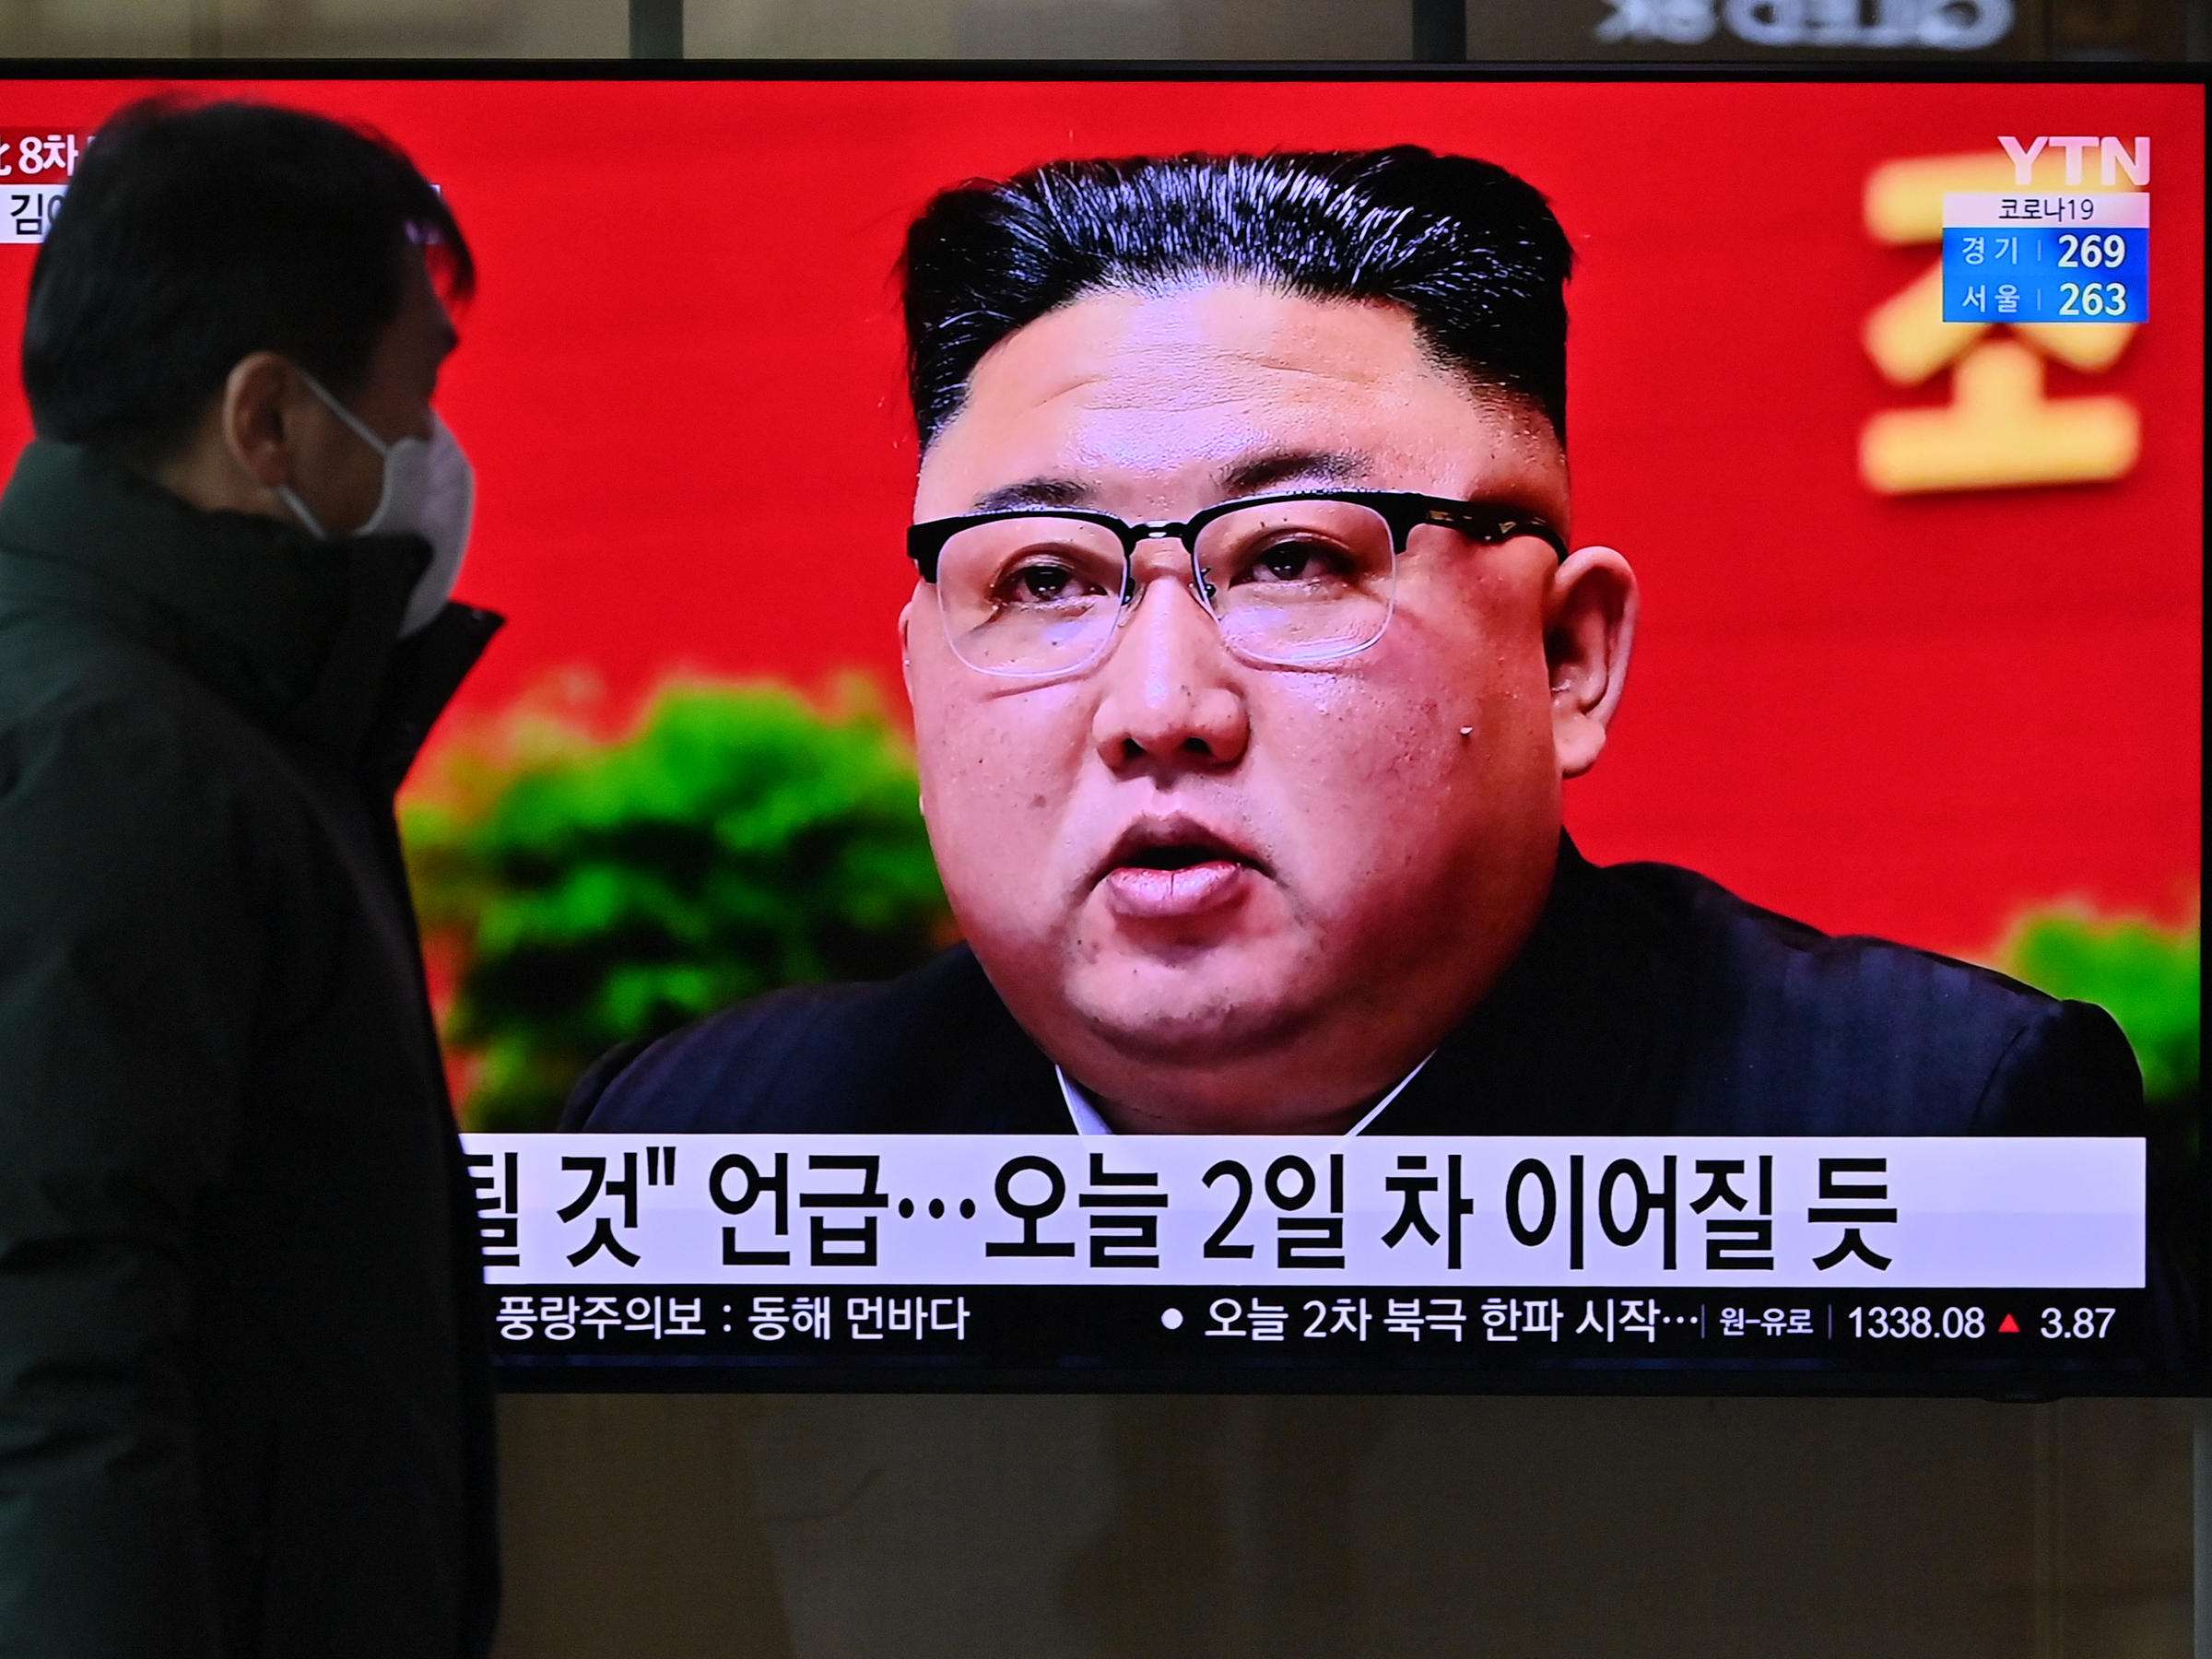 North Korean ruler Kim admits mistakes during party meeting